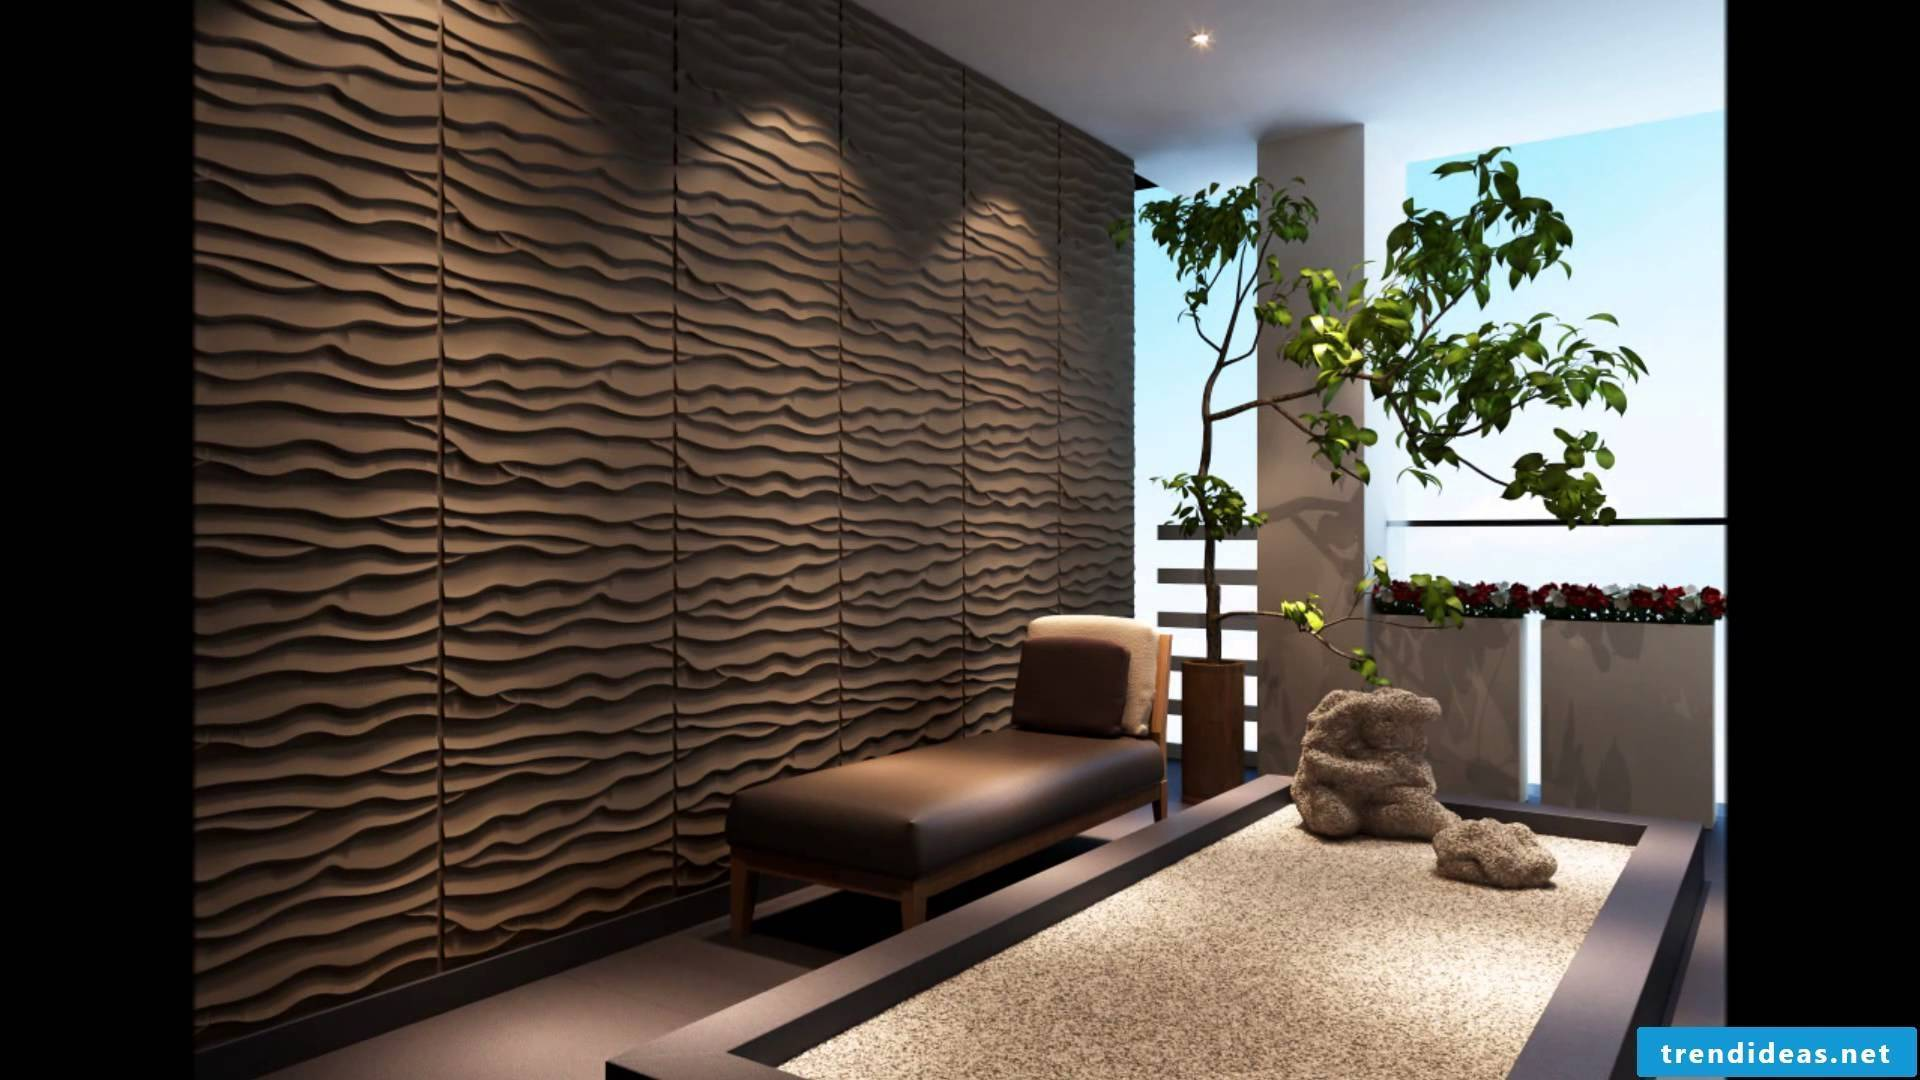 This type of wallcovering is especially good for DIY fans who want to dress their walls themselves, because the installation is easy.